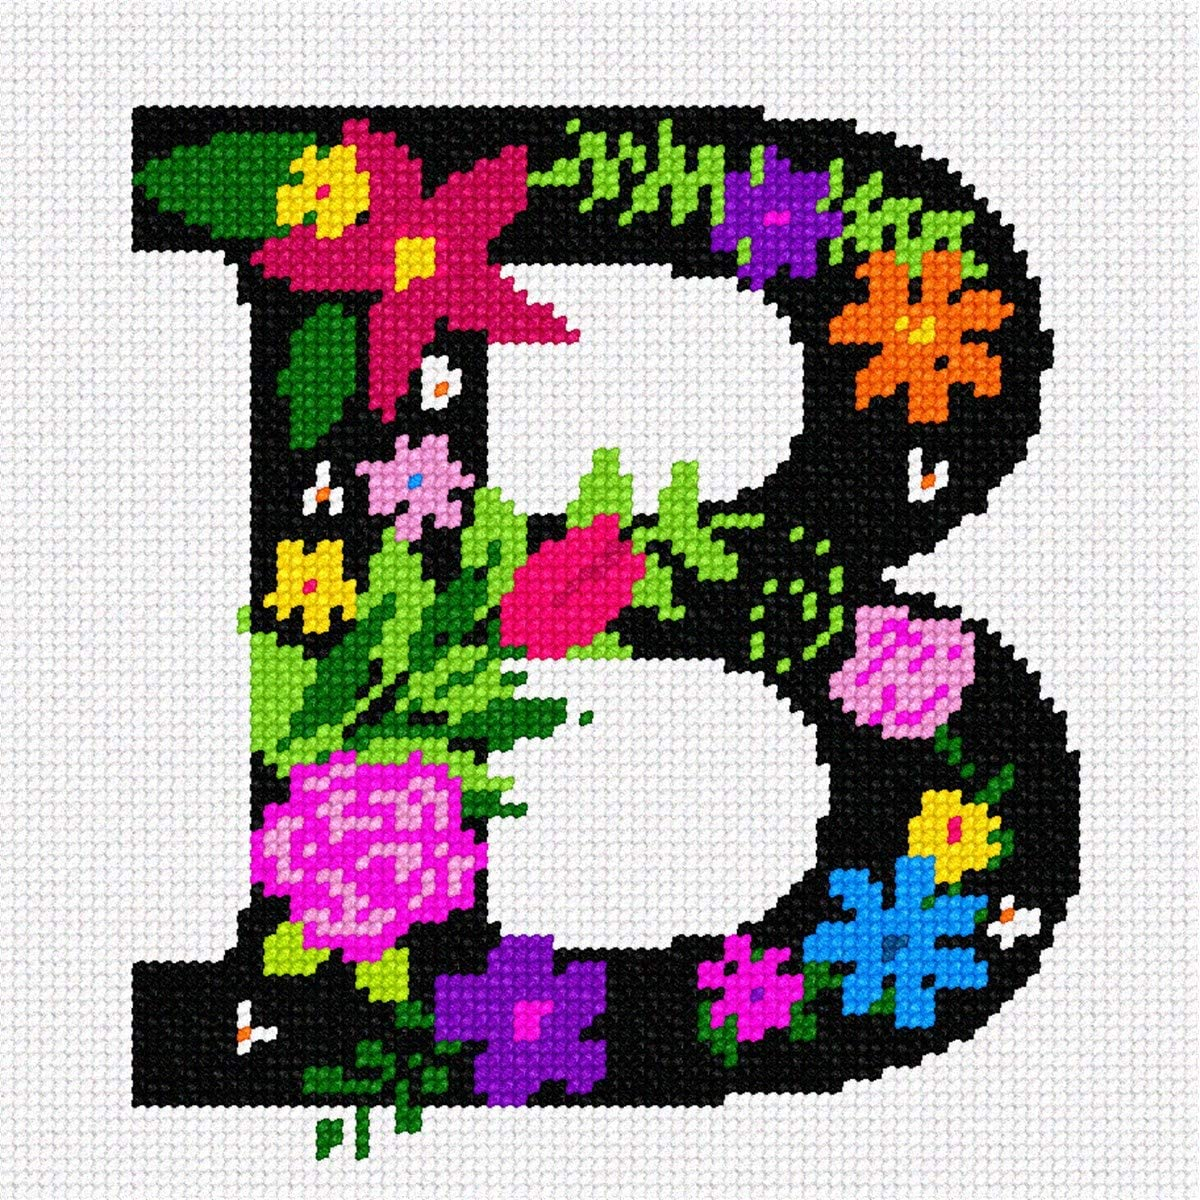 pepita Letter B Primary Floral Needlepoint Kit